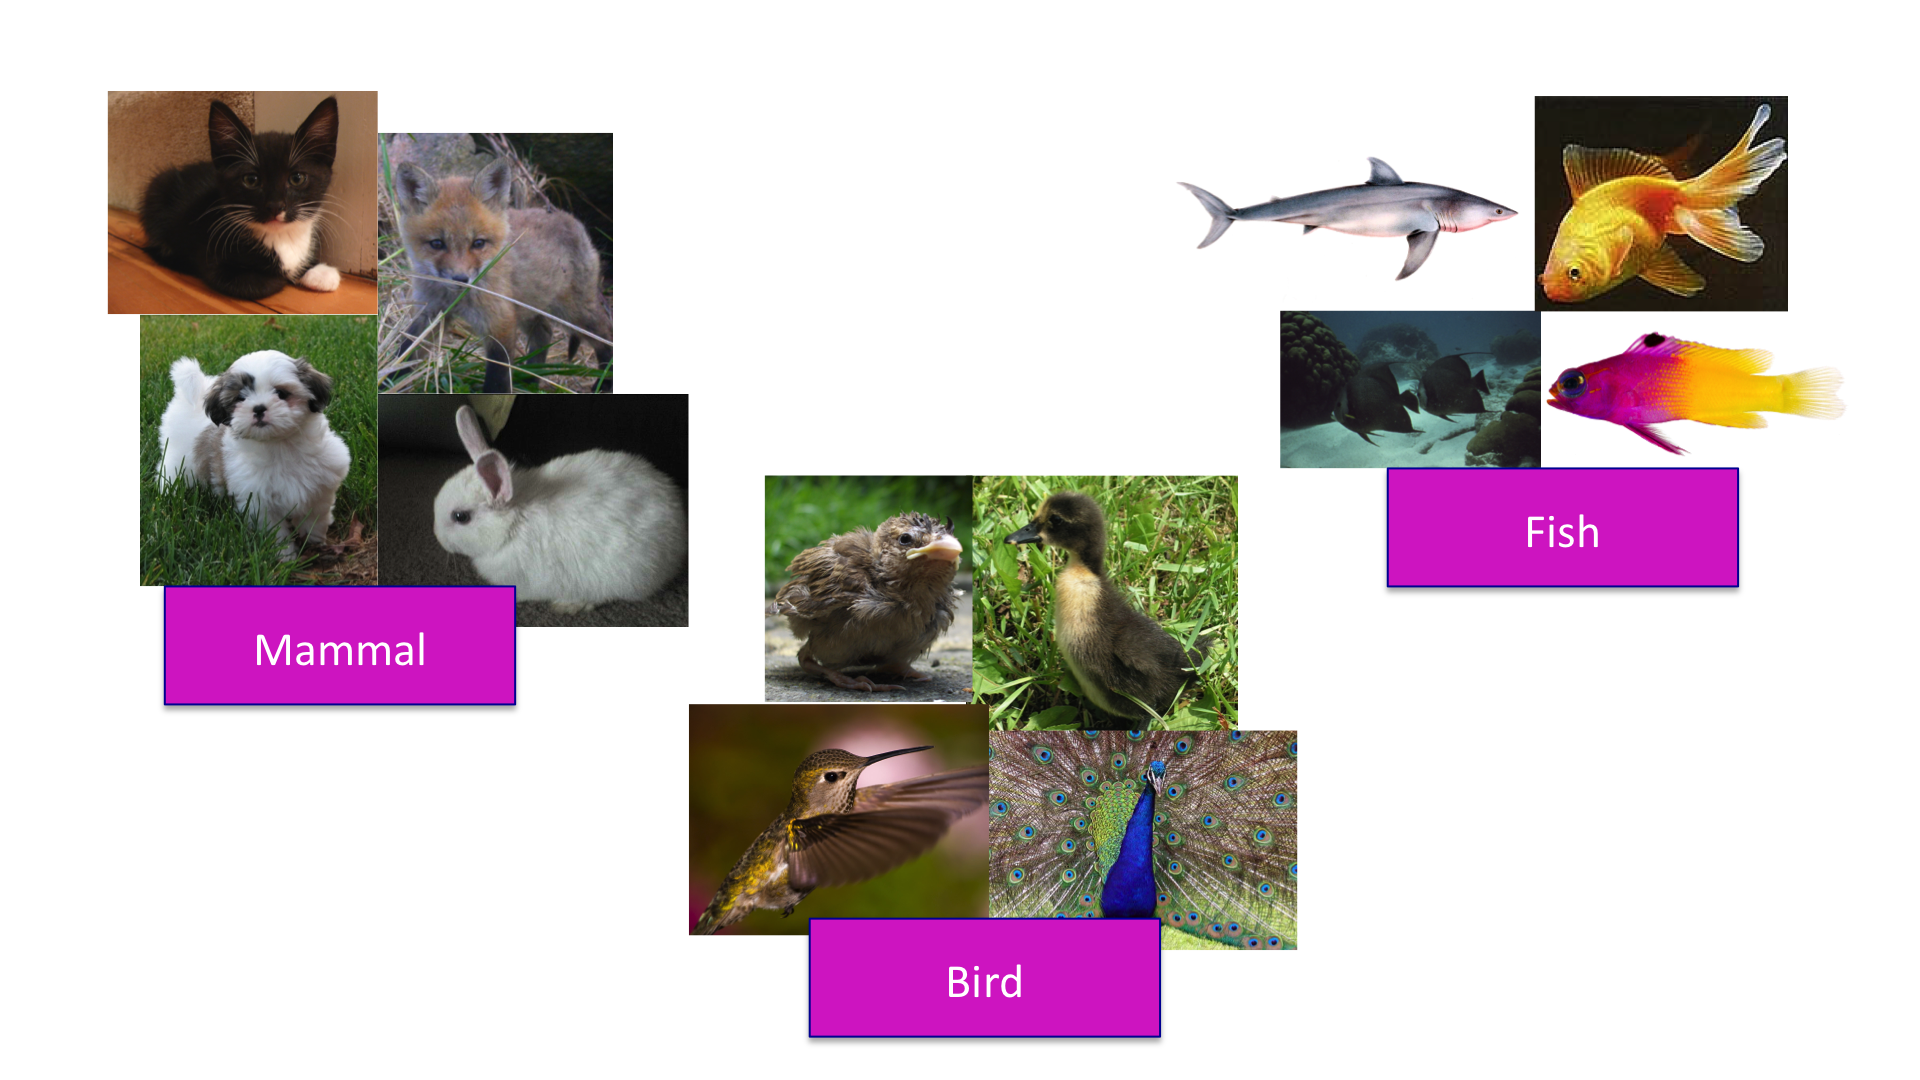 Clustering of animals